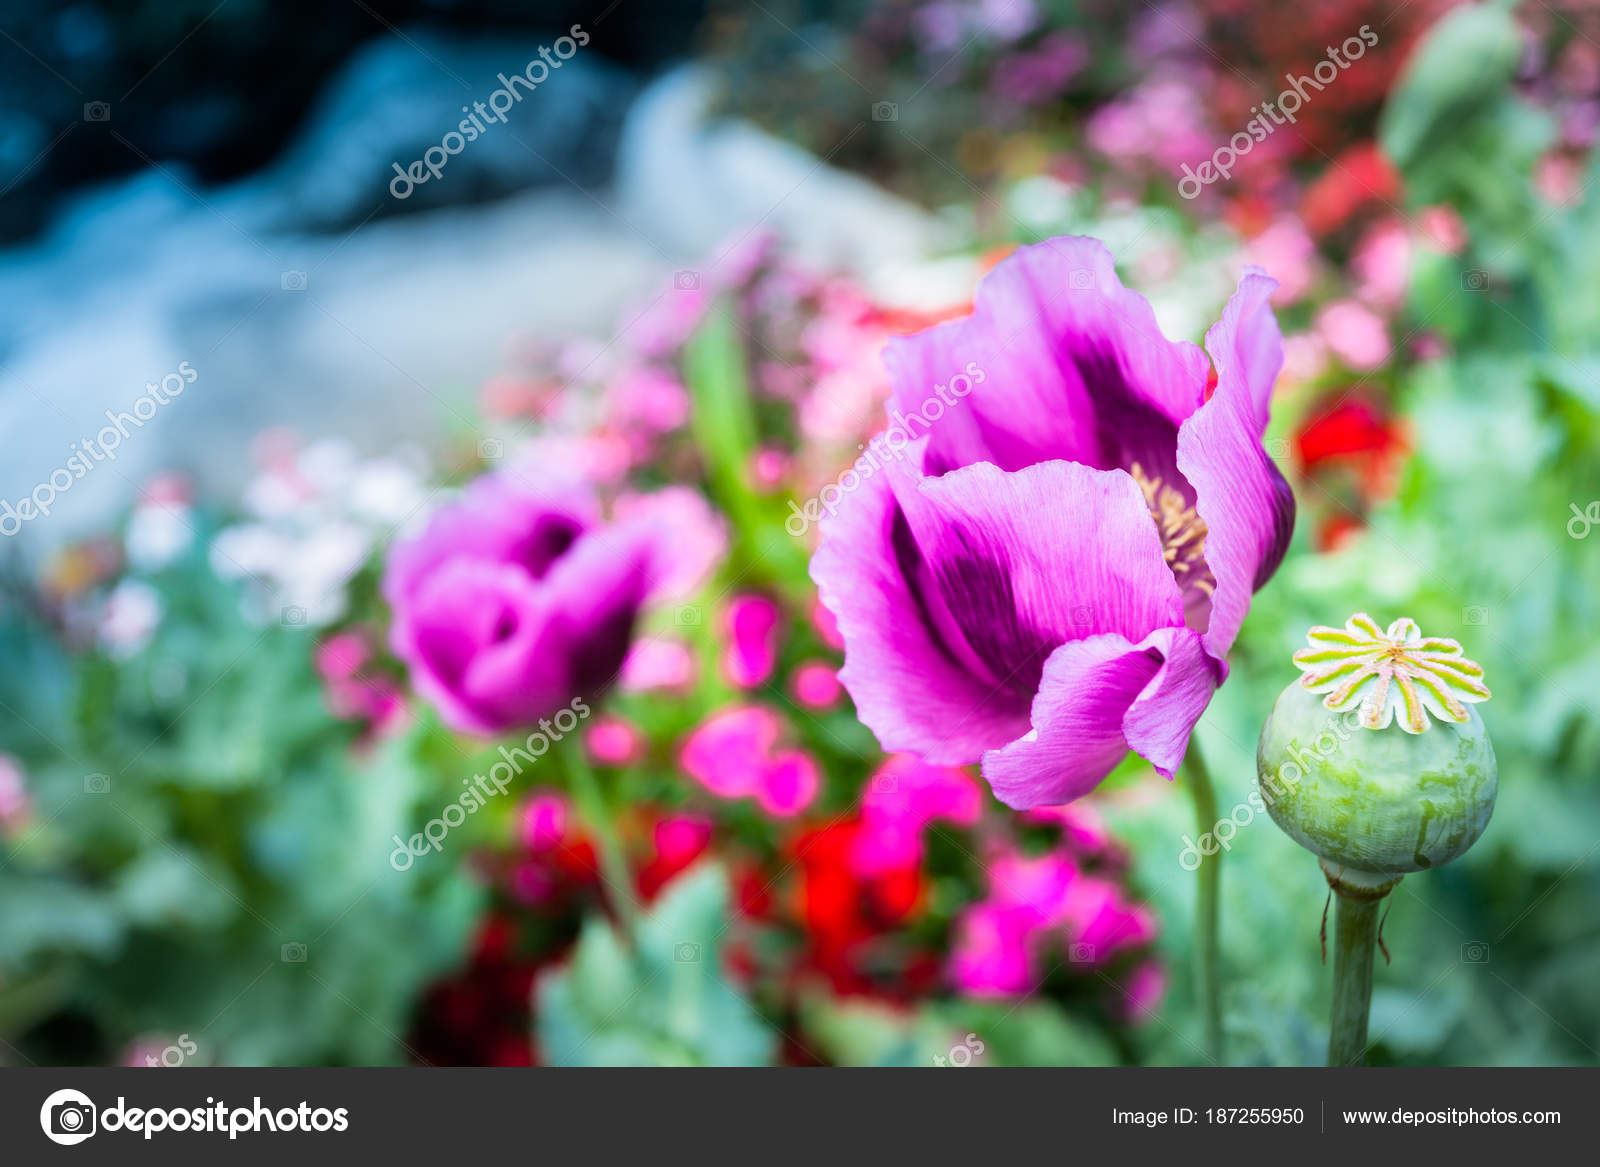 Opium can be extracted as heroin stock photo thaisign 187255950 opium poppy flower was planted for the show in hmong tribal village in a valley of doi pui to doi suthep national park chiang mai thailand mightylinksfo